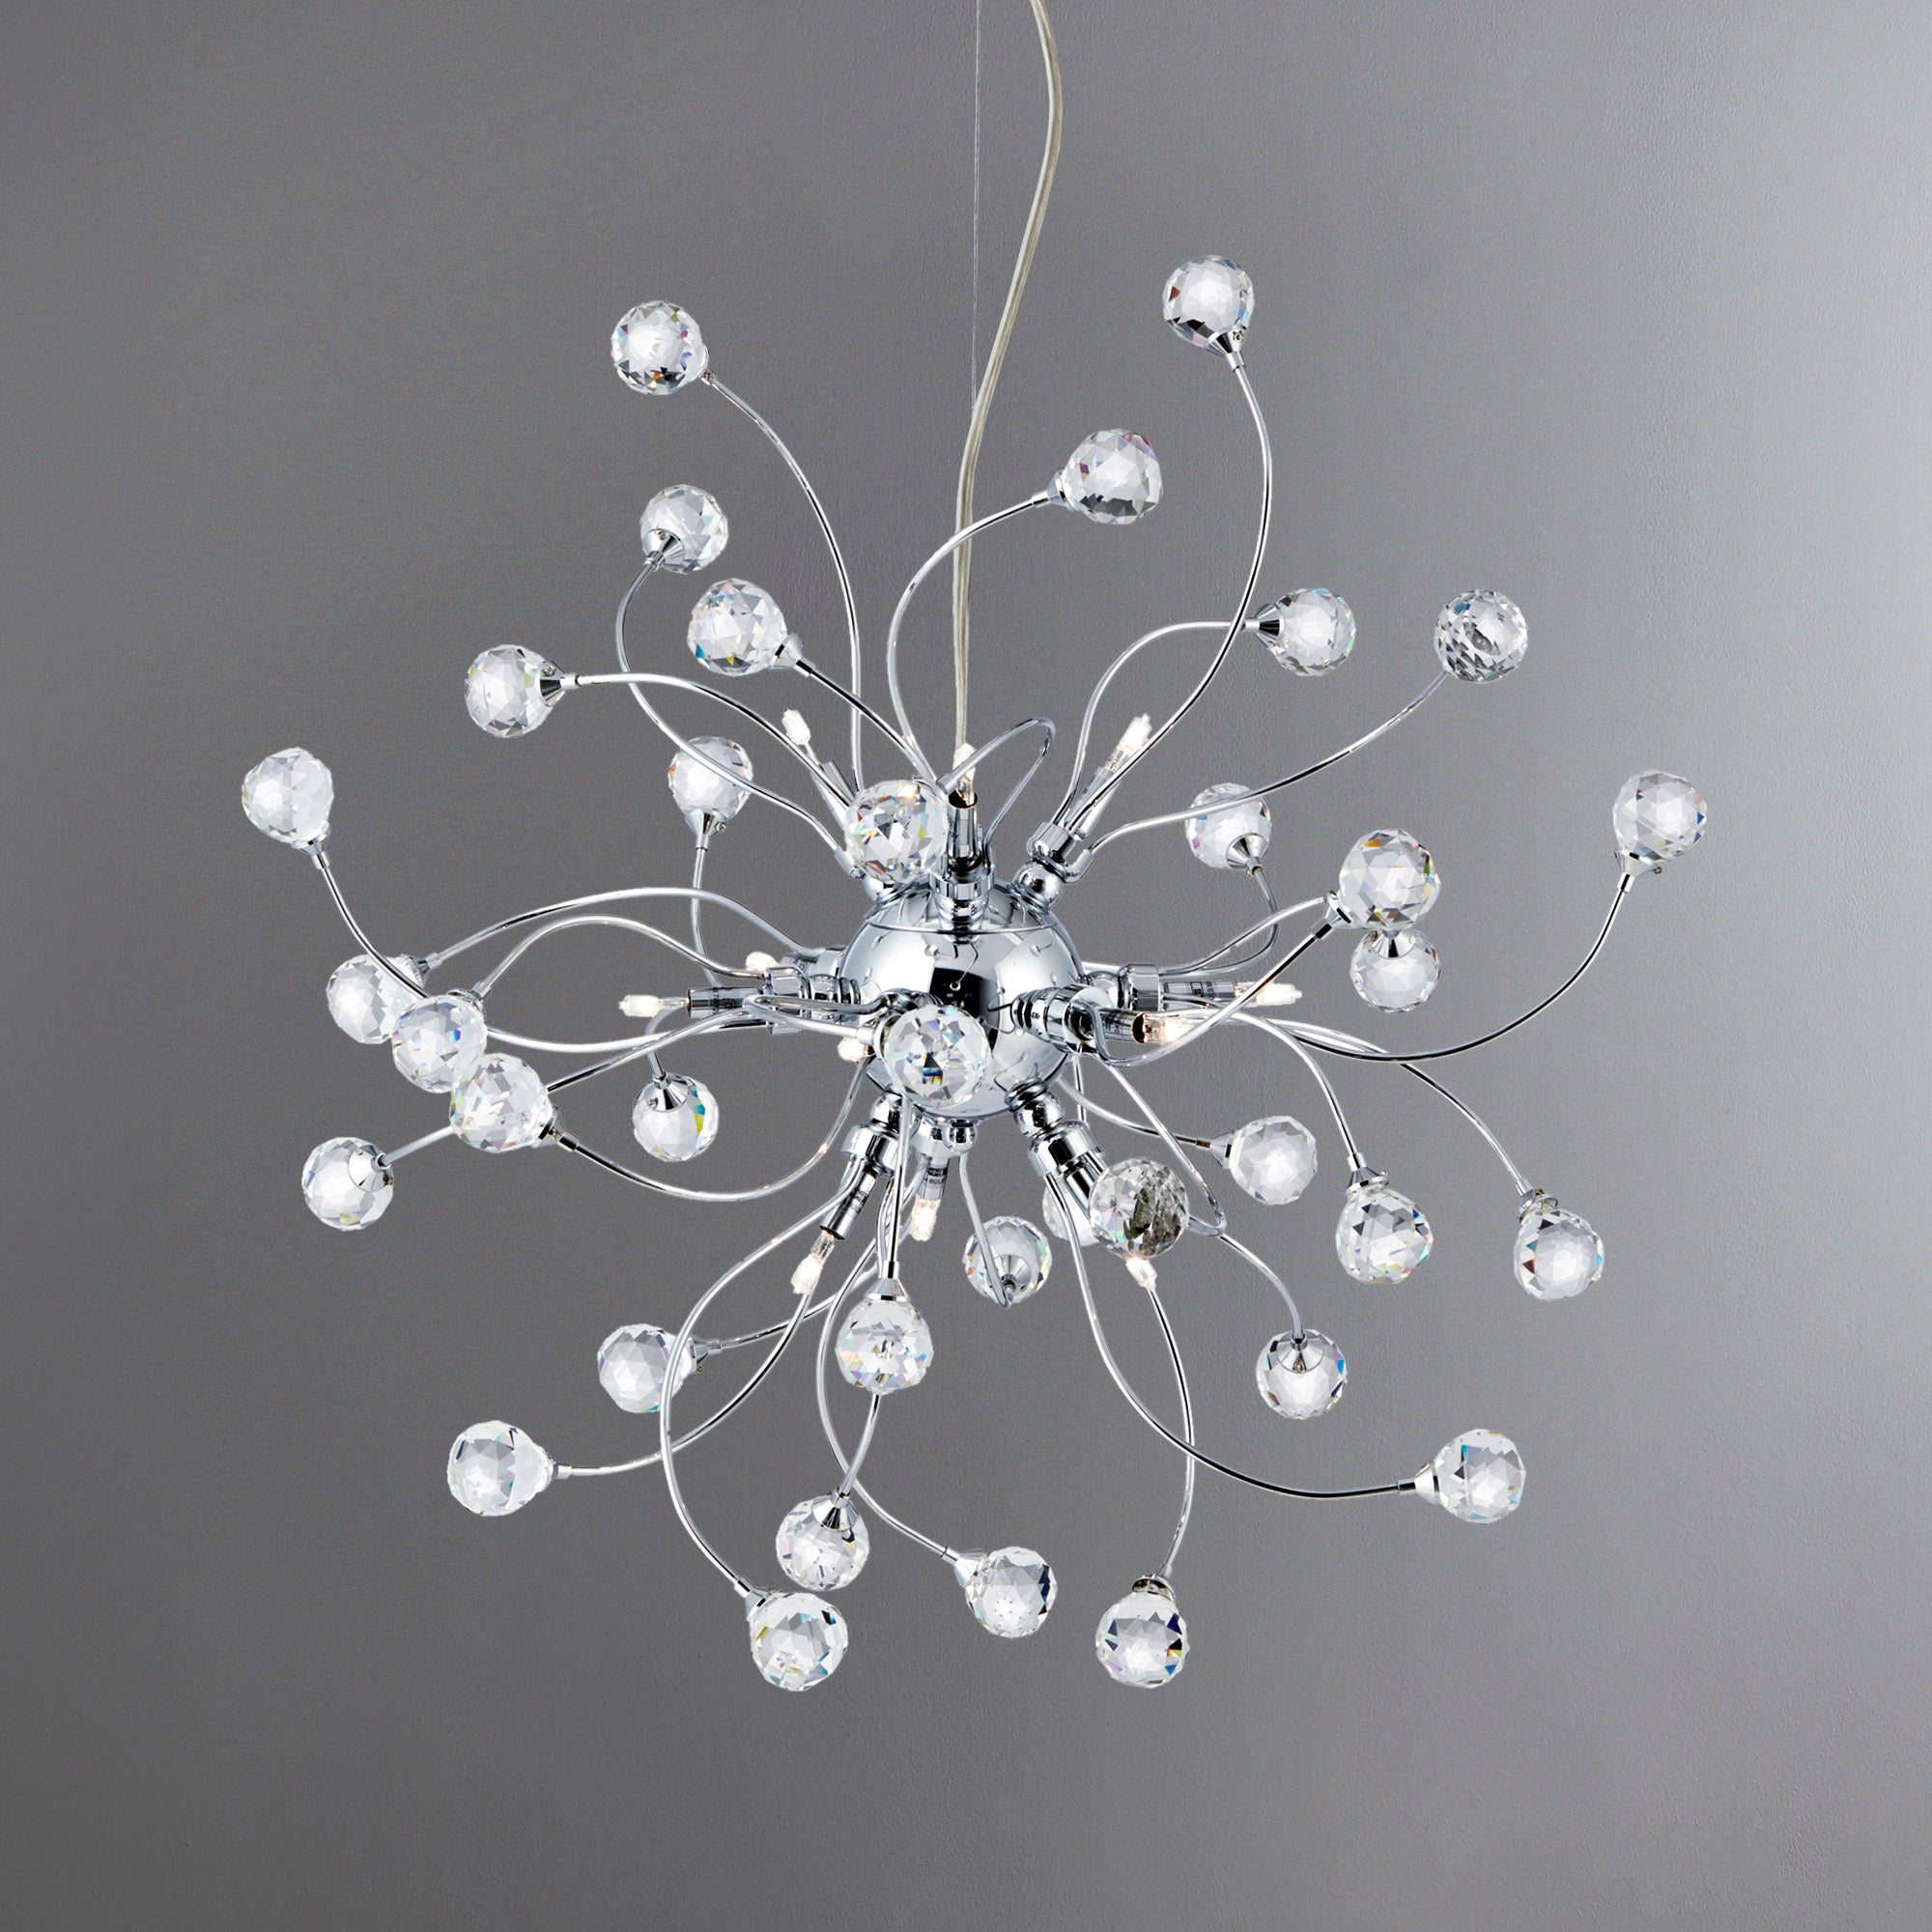 Image of 12 Light Ceiling Fitting Silver